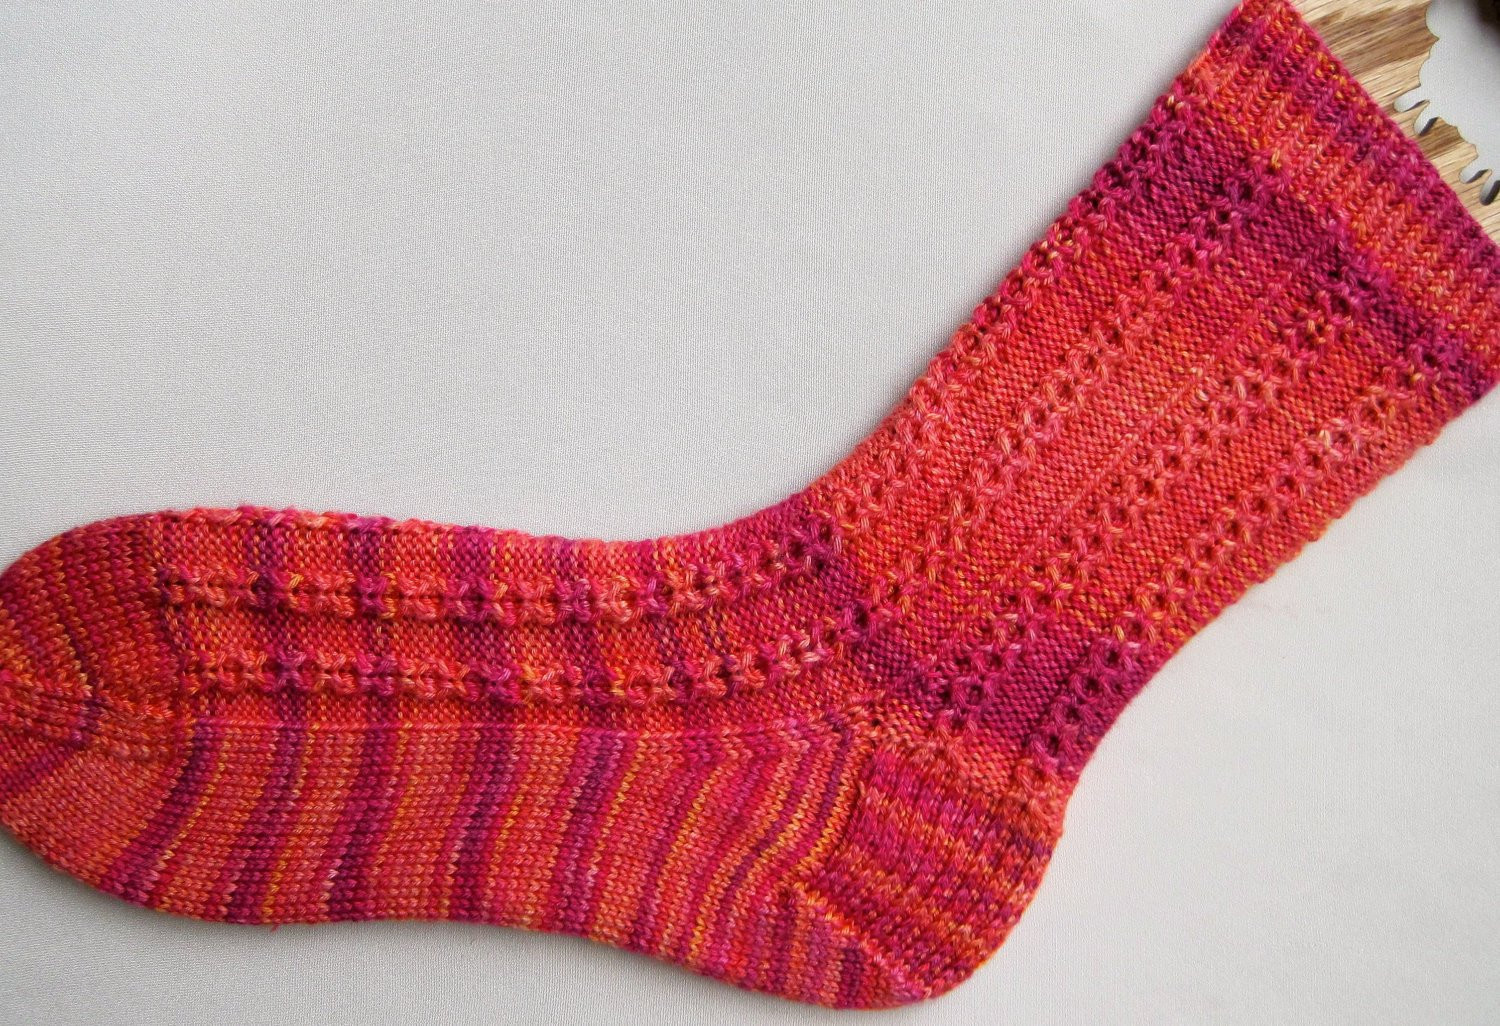 Sock Knitting Pattern Elegant Knit sock Pattern Honey B Ribbed sock by Of Unique 41 Photos sock Knitting Pattern